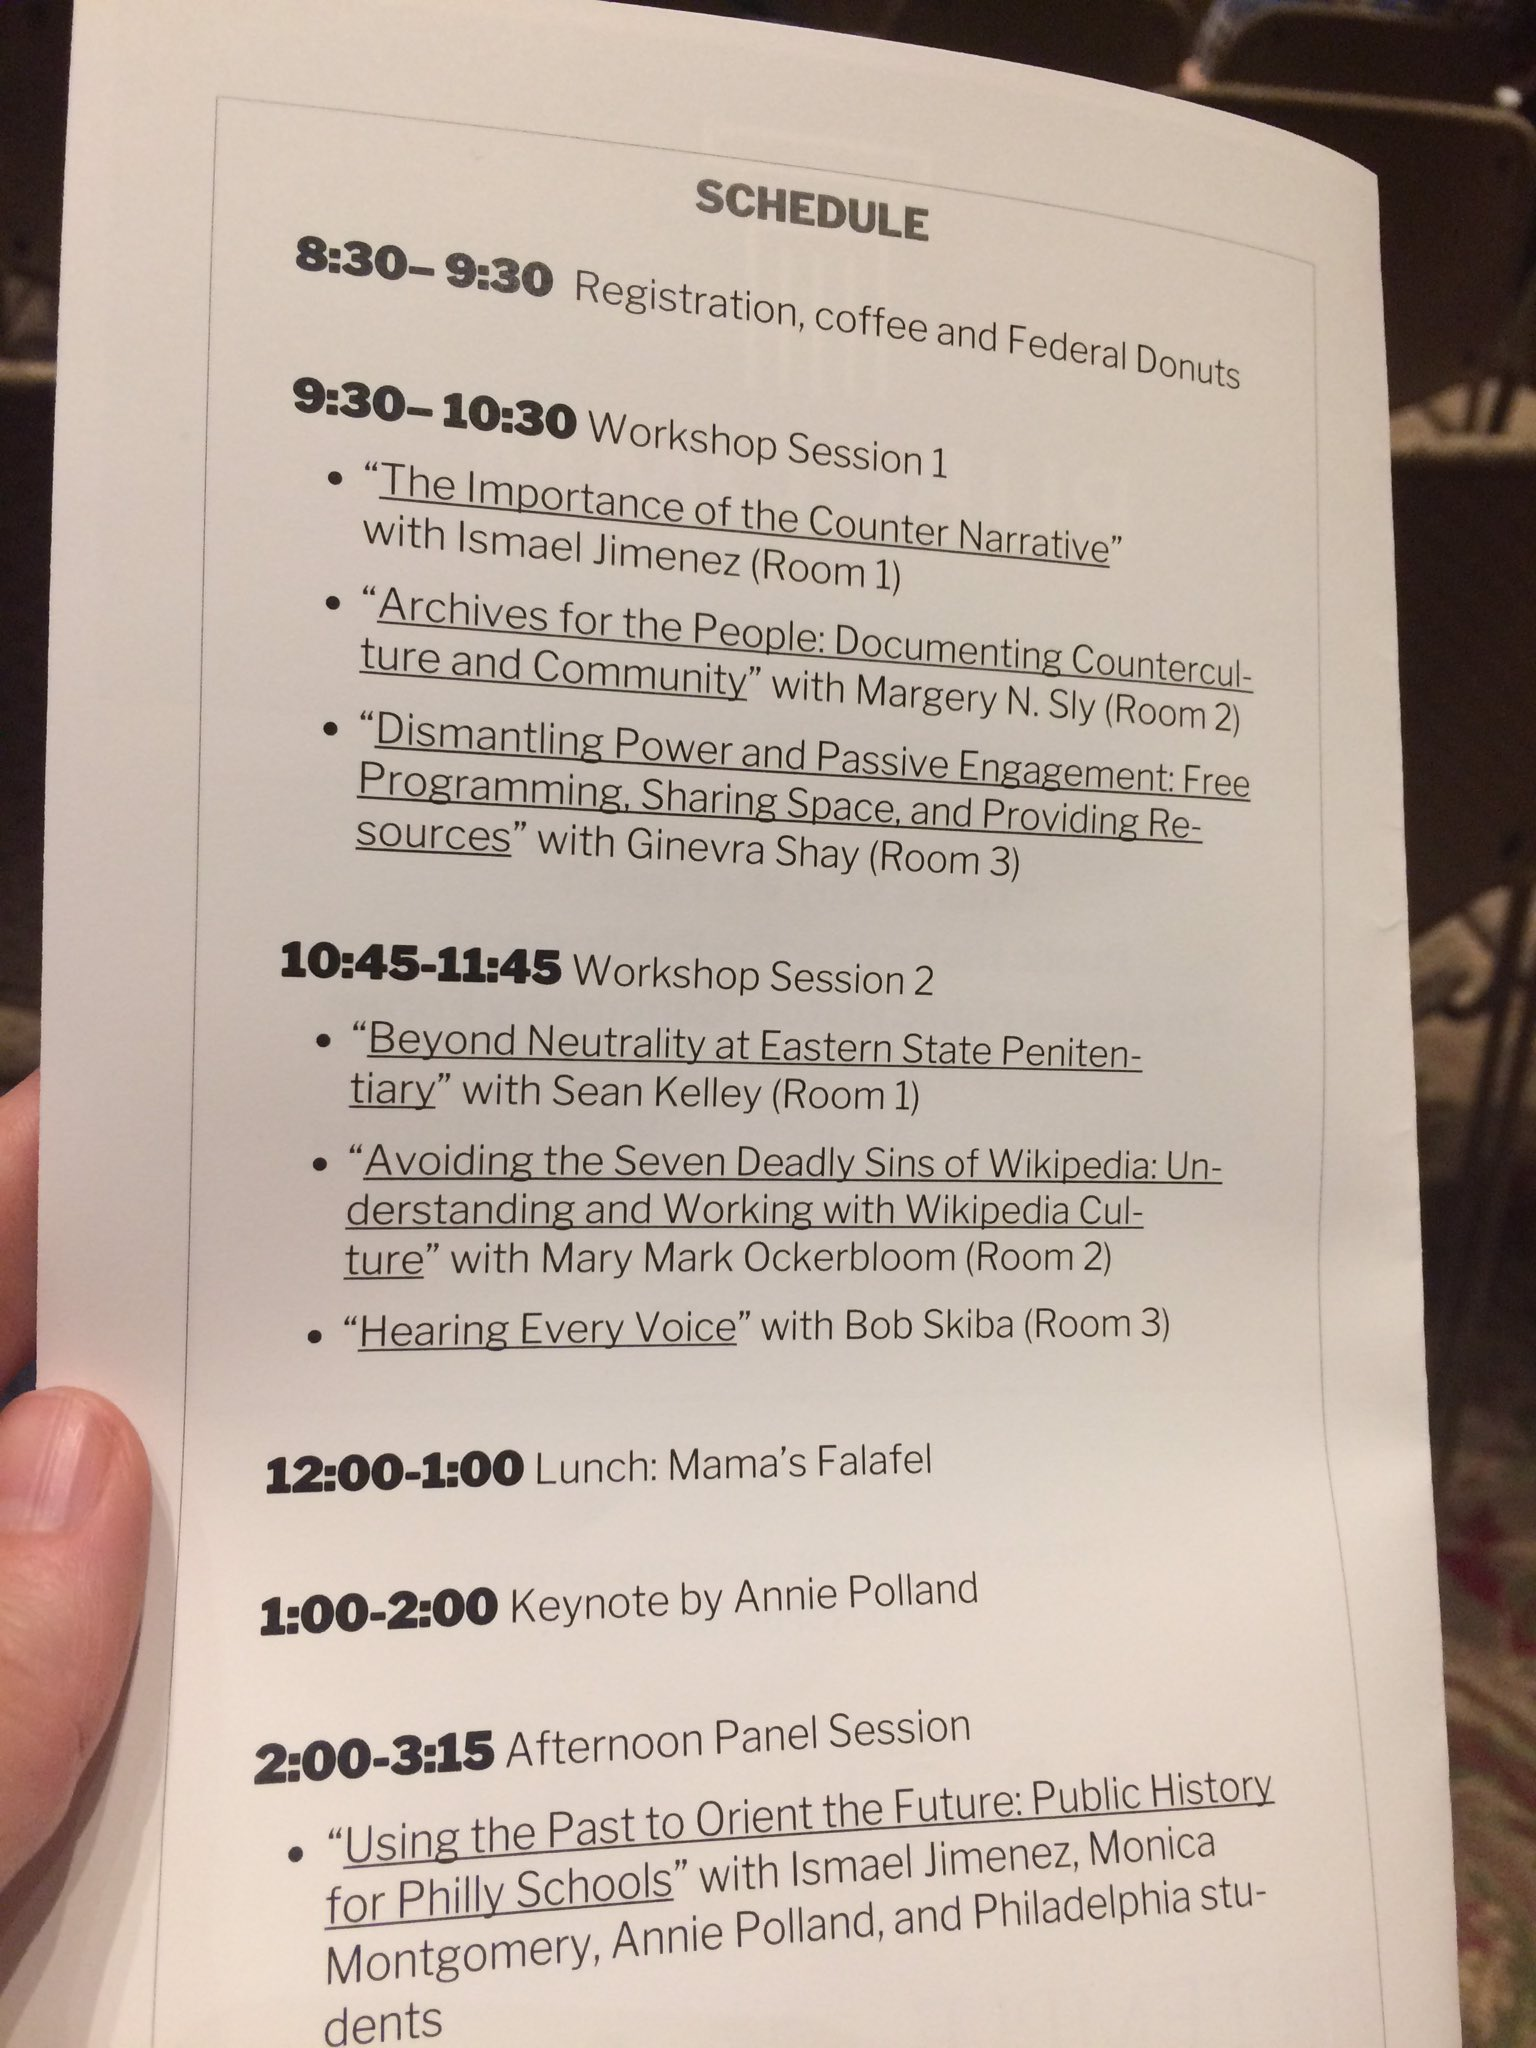 The 5:30 AM alarm was worth it to take the train up to Philly for the day & catch this great lineup of public historians at #PubComm17! https://t.co/LrTB7viSRX